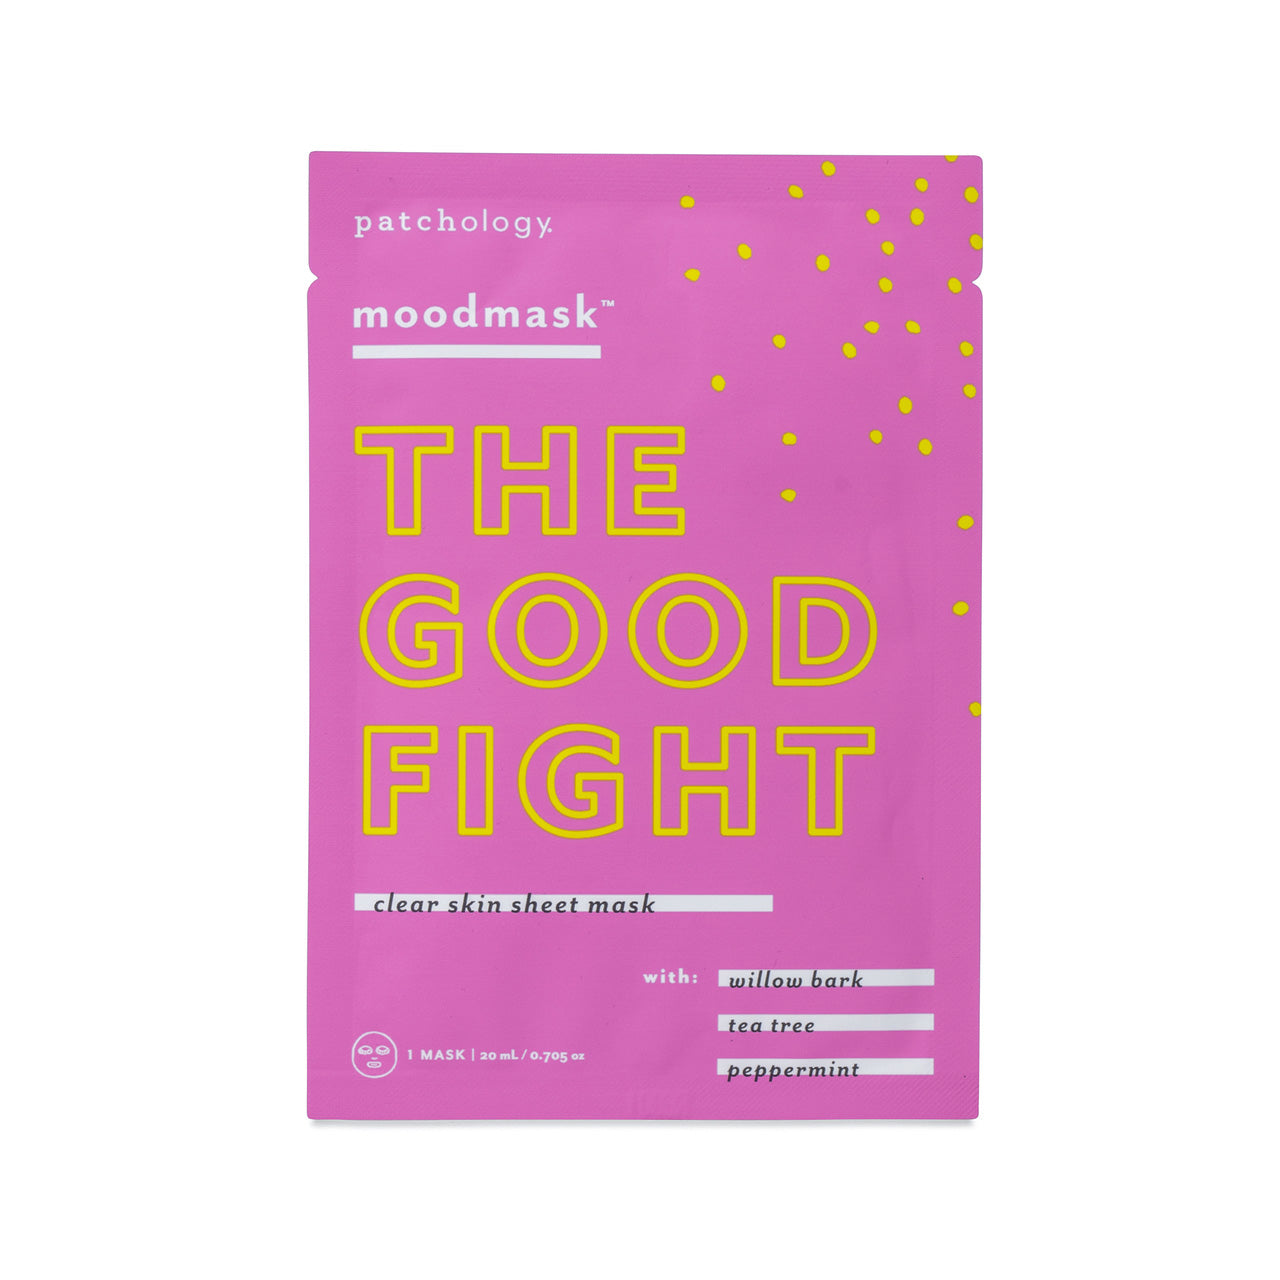 Patchology Moodmask™ The Good Fight